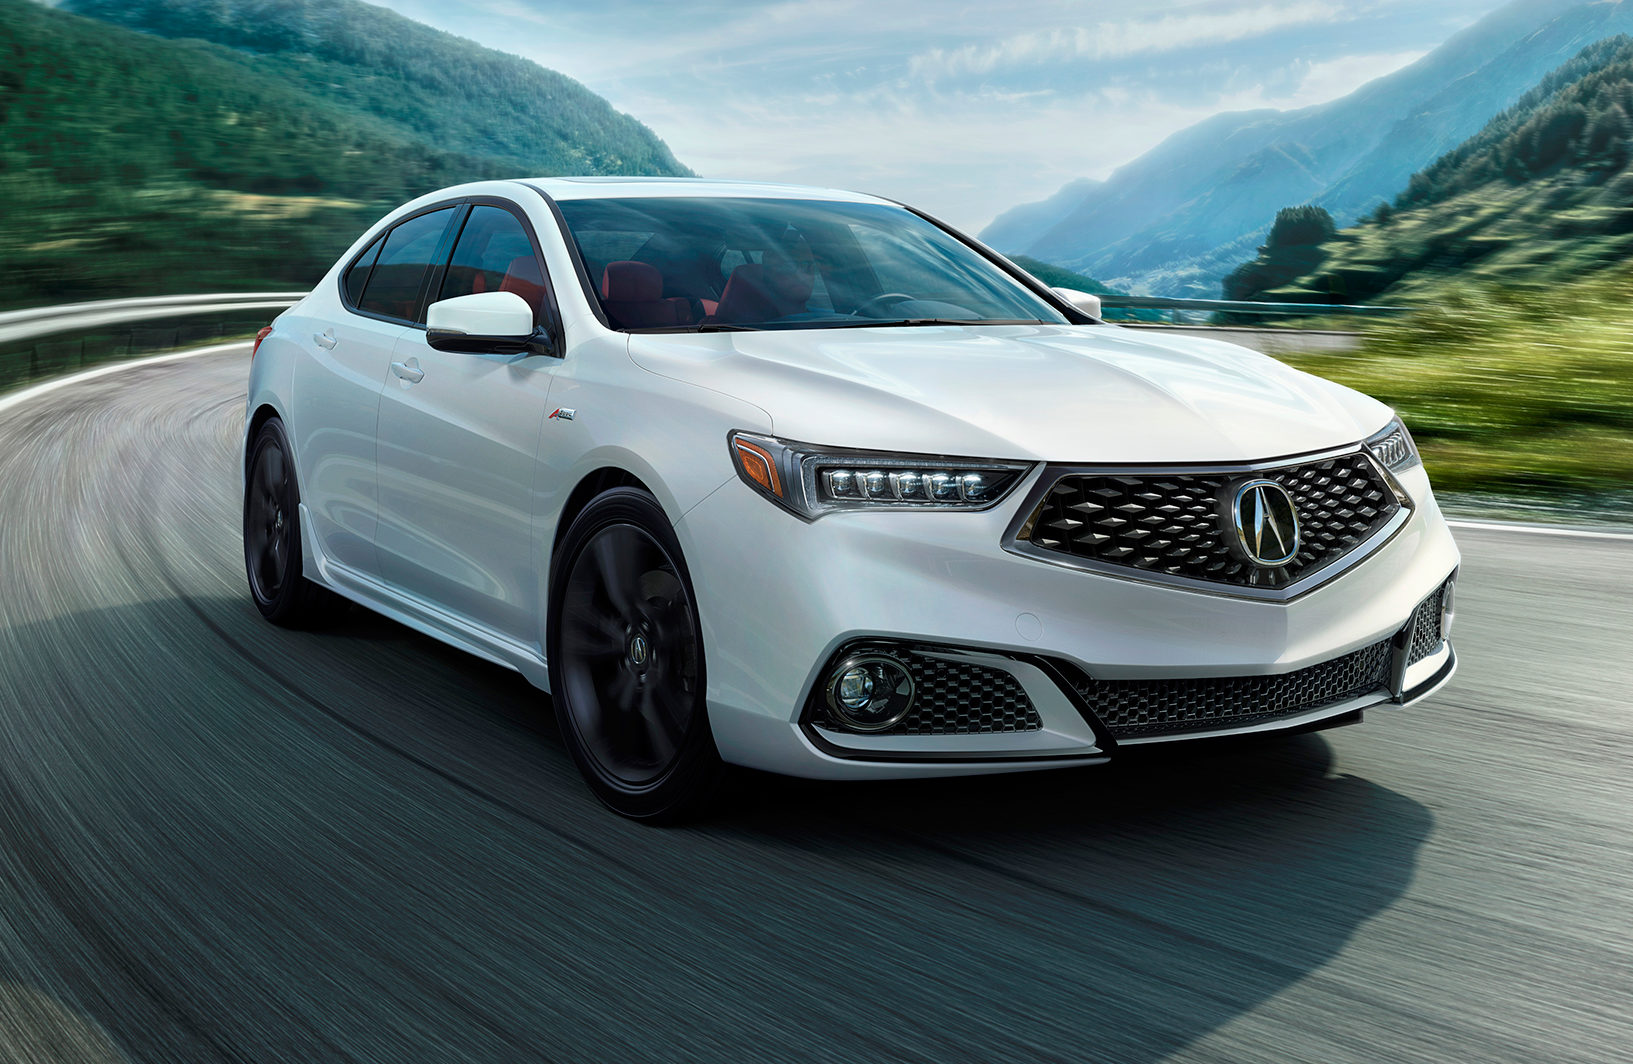 2018 Acura TLX Front Three Quarter In Motion E1491492646313